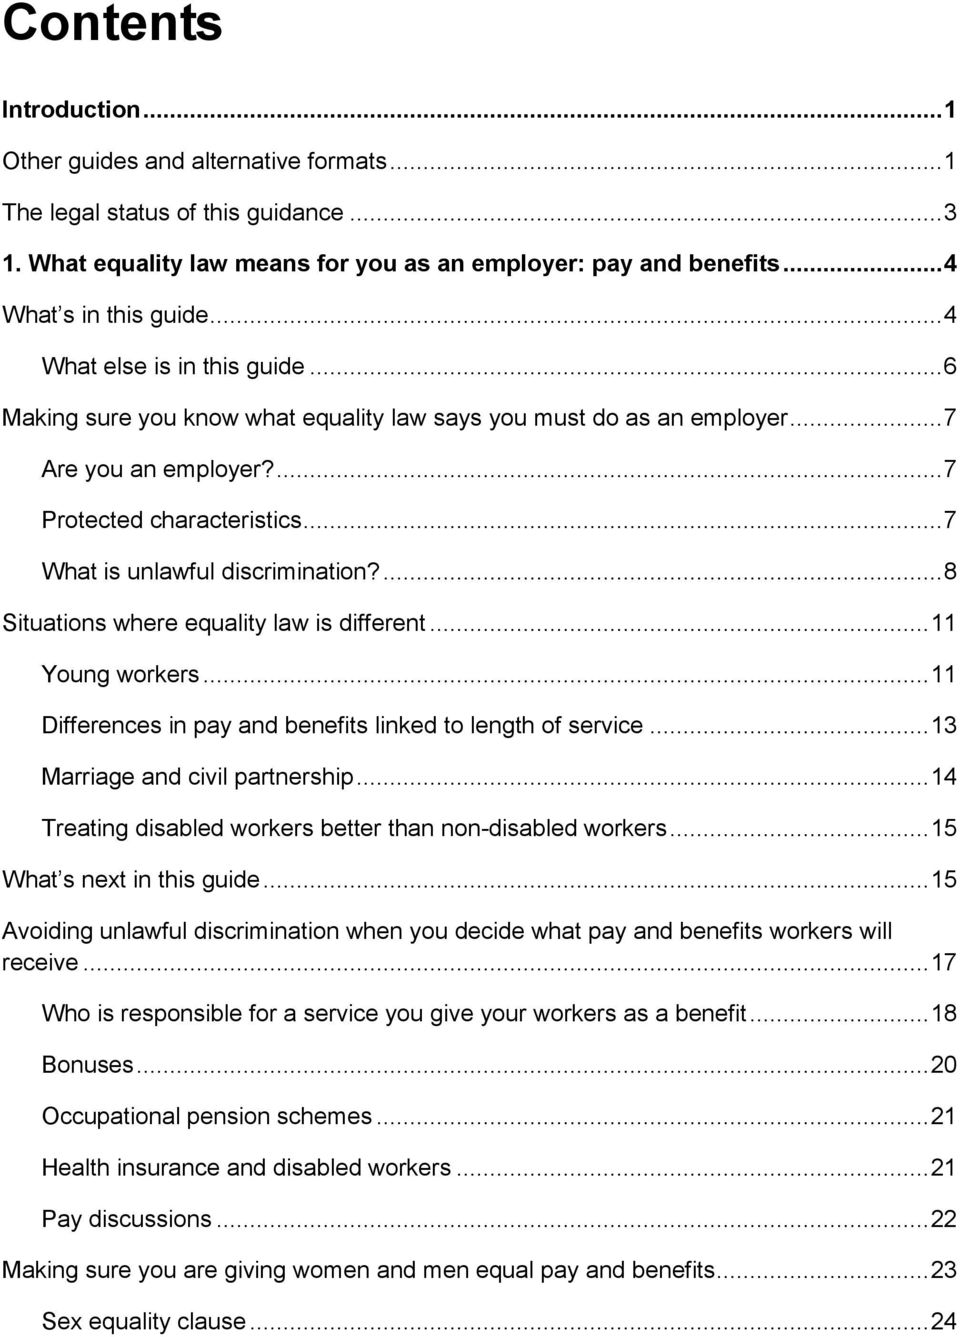 ... 8 Situations where equality law is different... 11 Young workers... 11 Differences in pay and benefits linked to length of service... 13 Marriage and civil partnership.